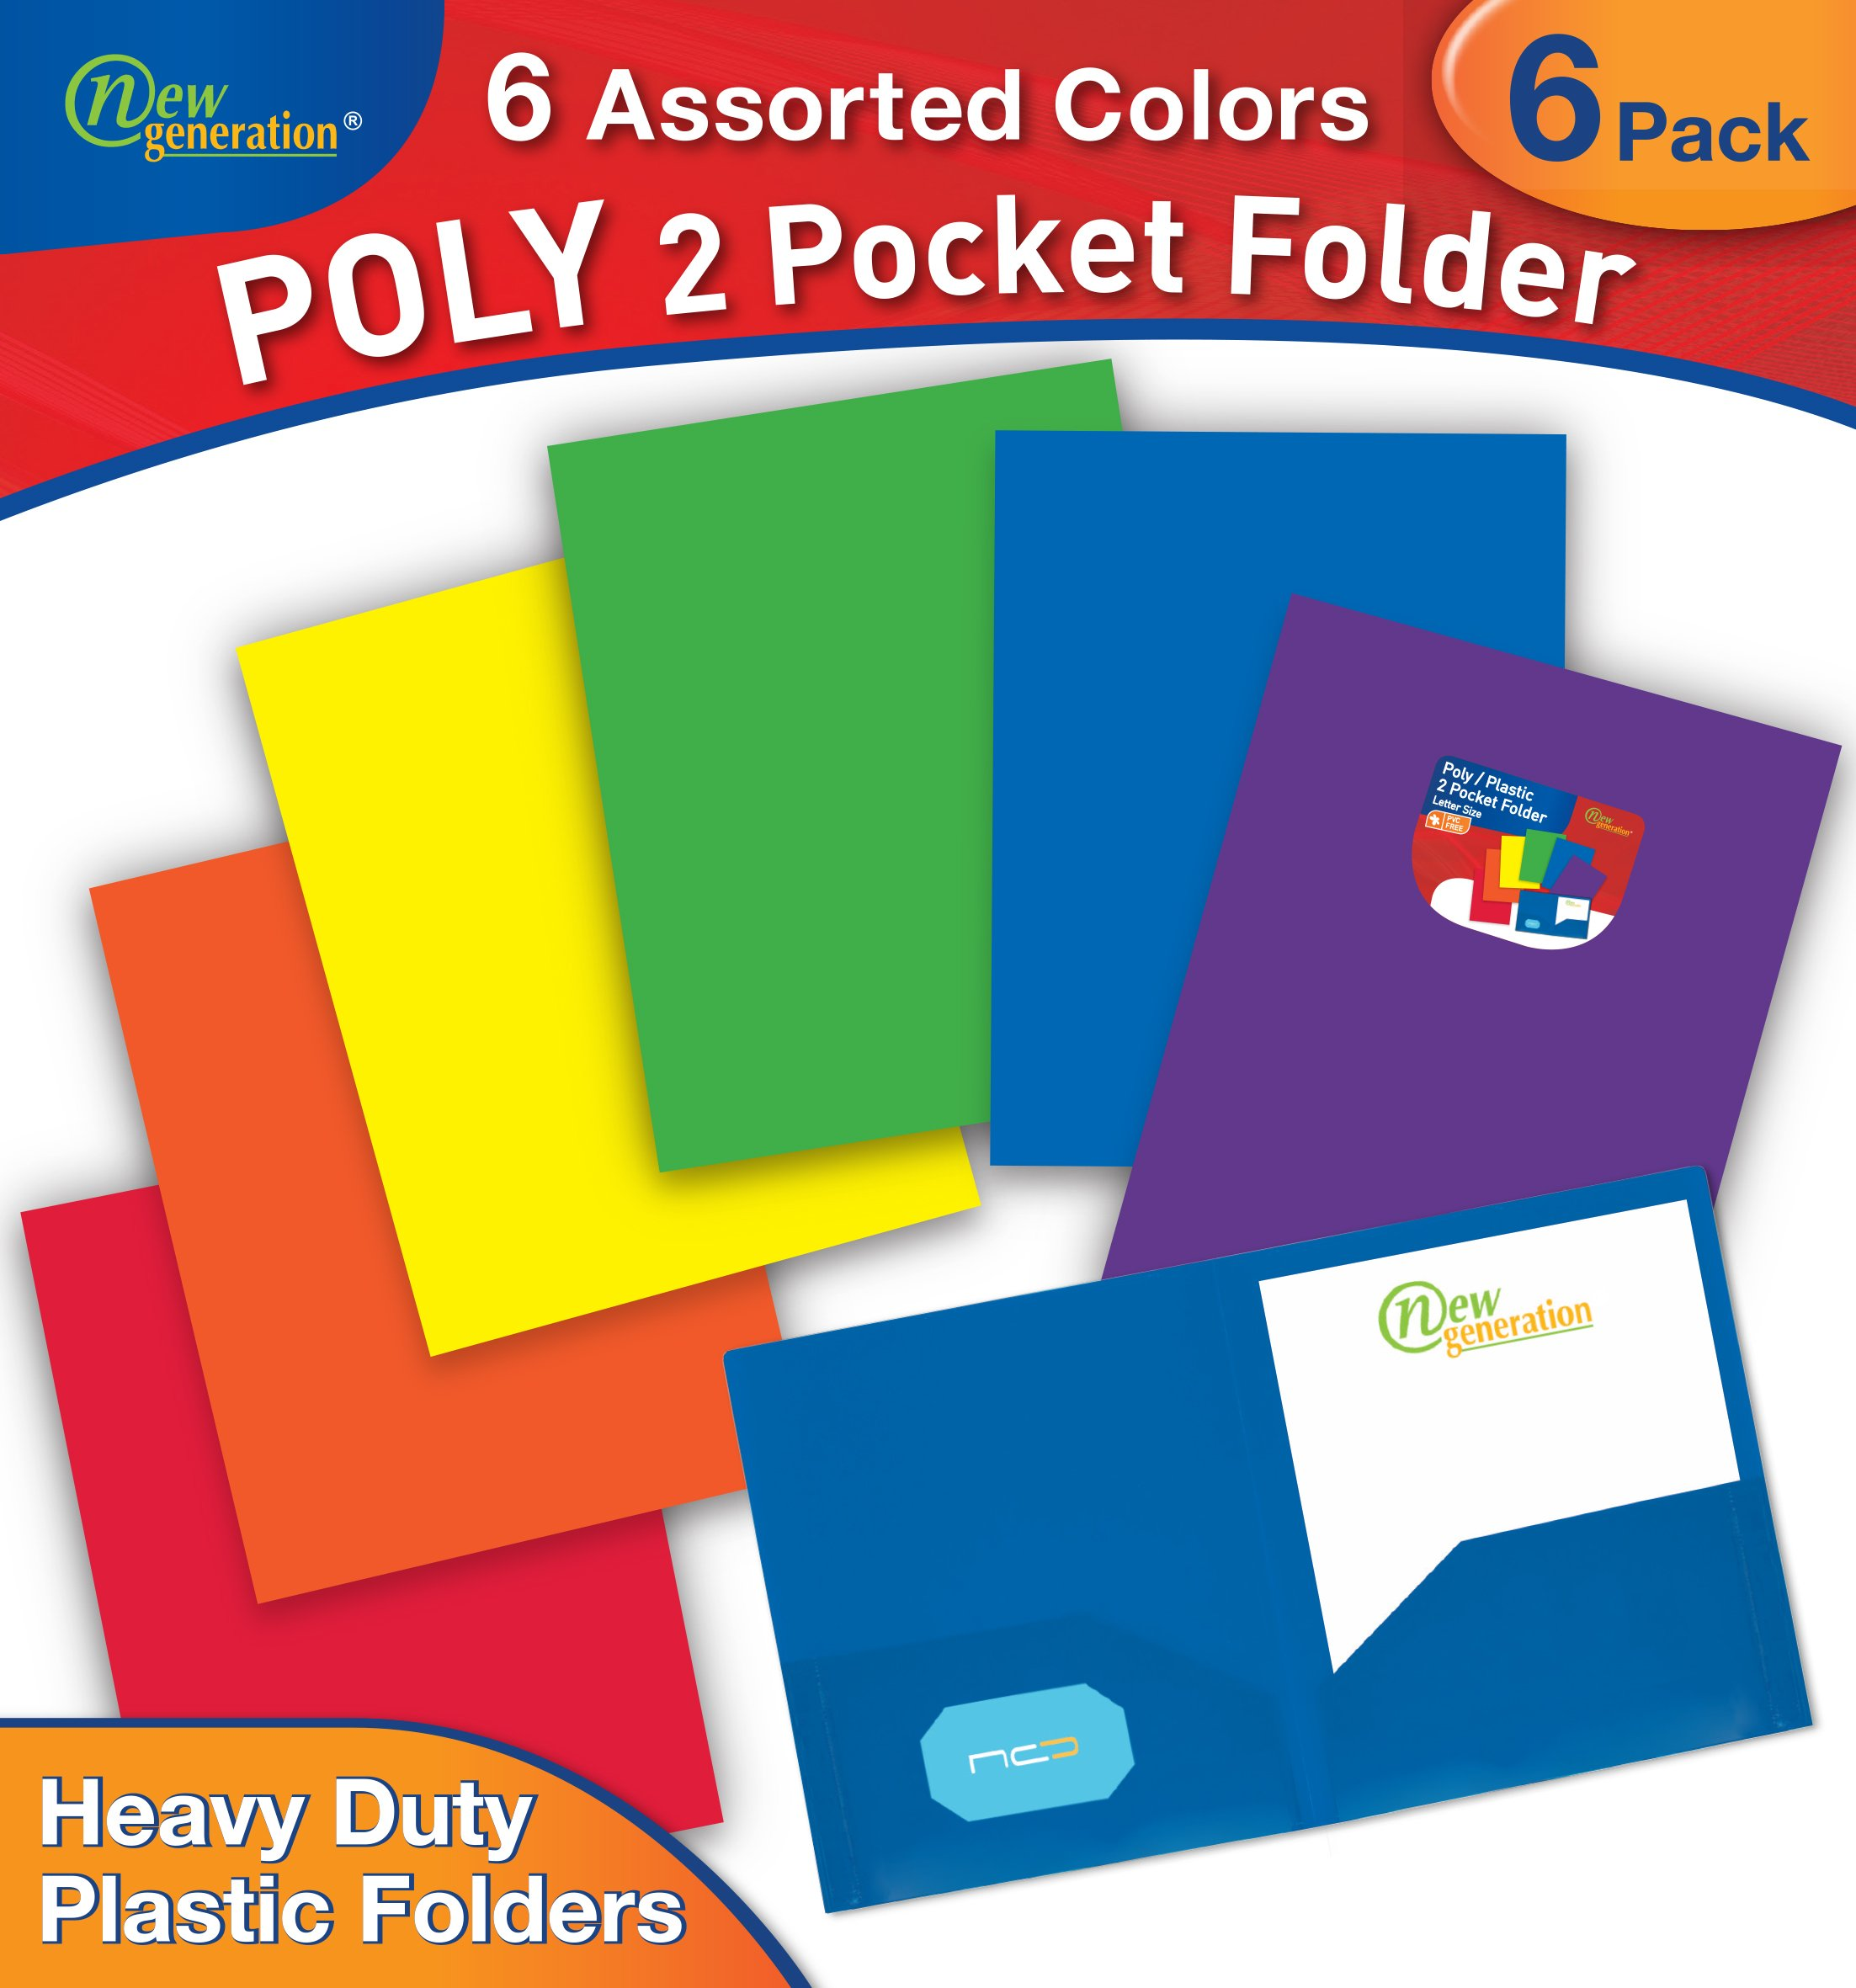 New Generation - ASSORTED FASHION COLORS - 6 PACK 2 Pocket Poly/Plastic Folder, Heavy Duty Folders For Letter Size Papers, Includes Business Card Slot (6 PACK ASSORTED COLORES)